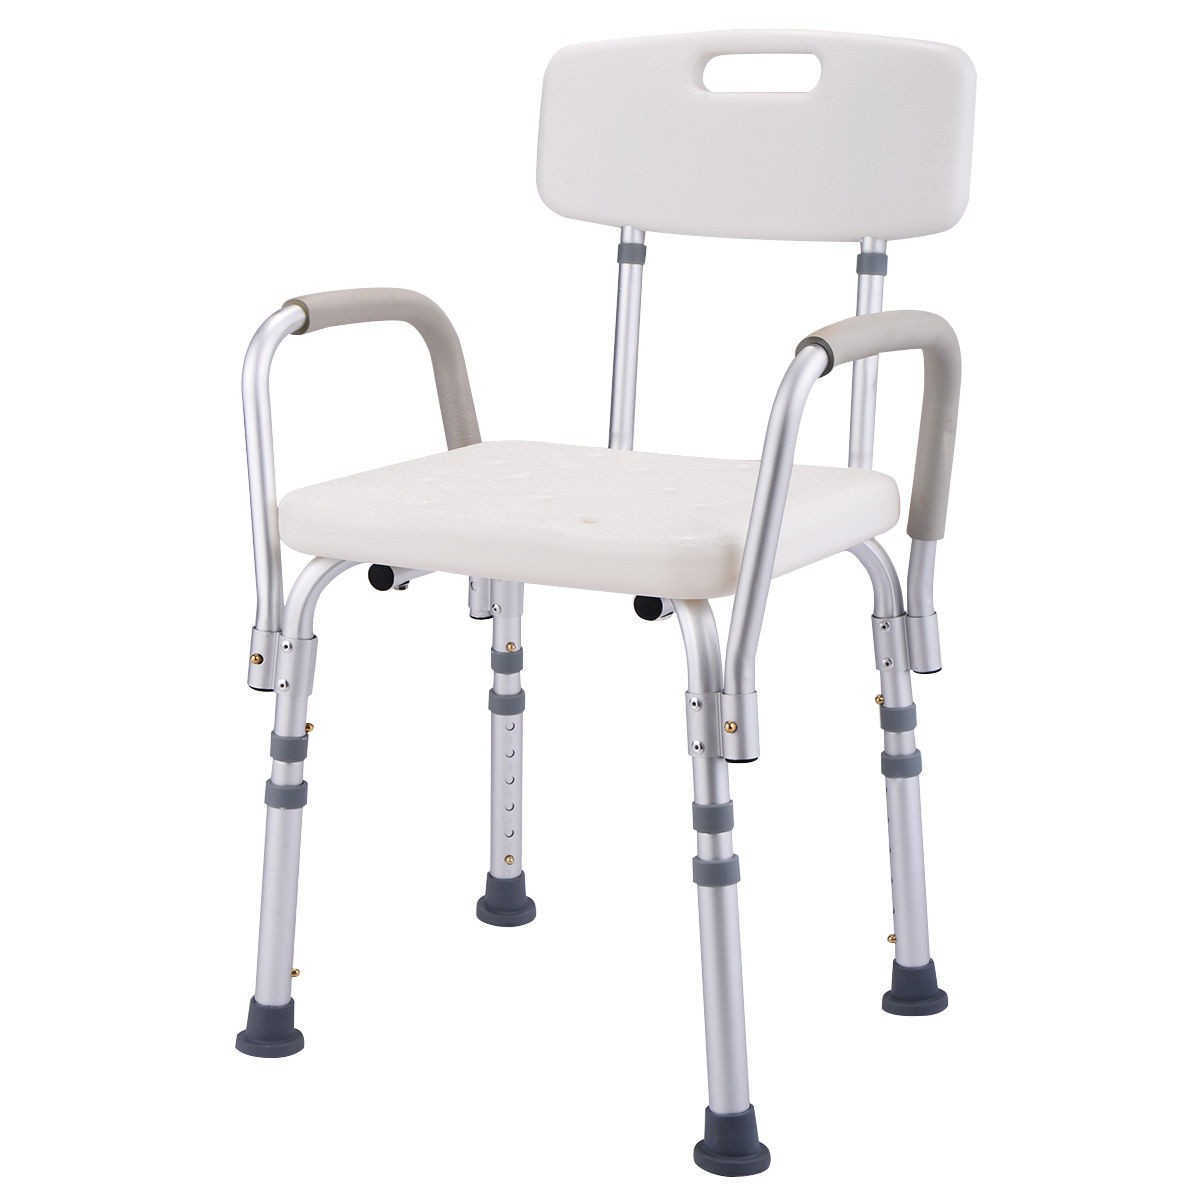 Height Adjustable Chair 6 Height Adjustable Medical Shower Chair Stool